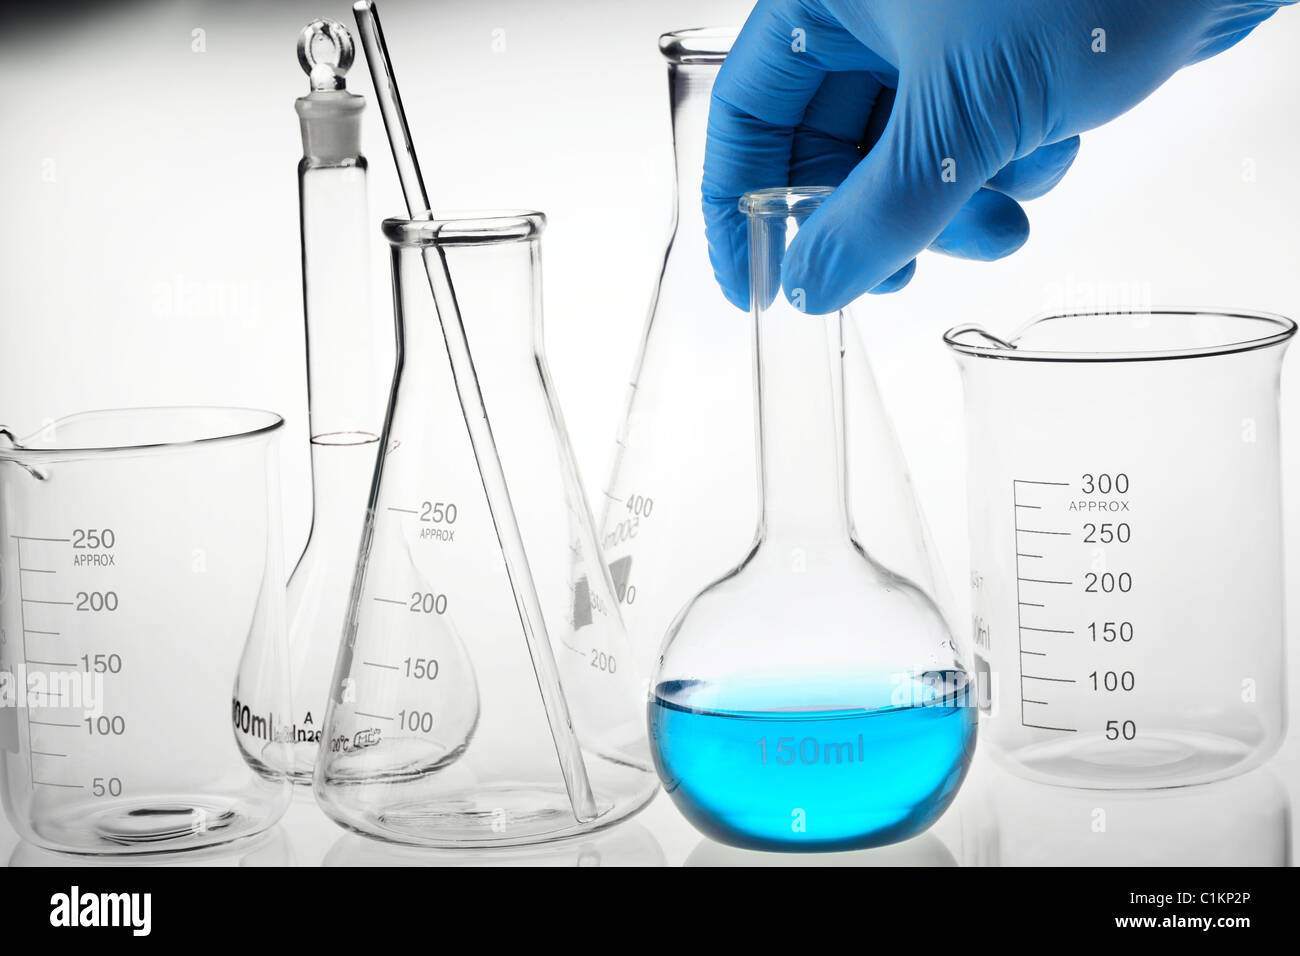 Scientist hand holding a flask in a research lab. - Stock Image